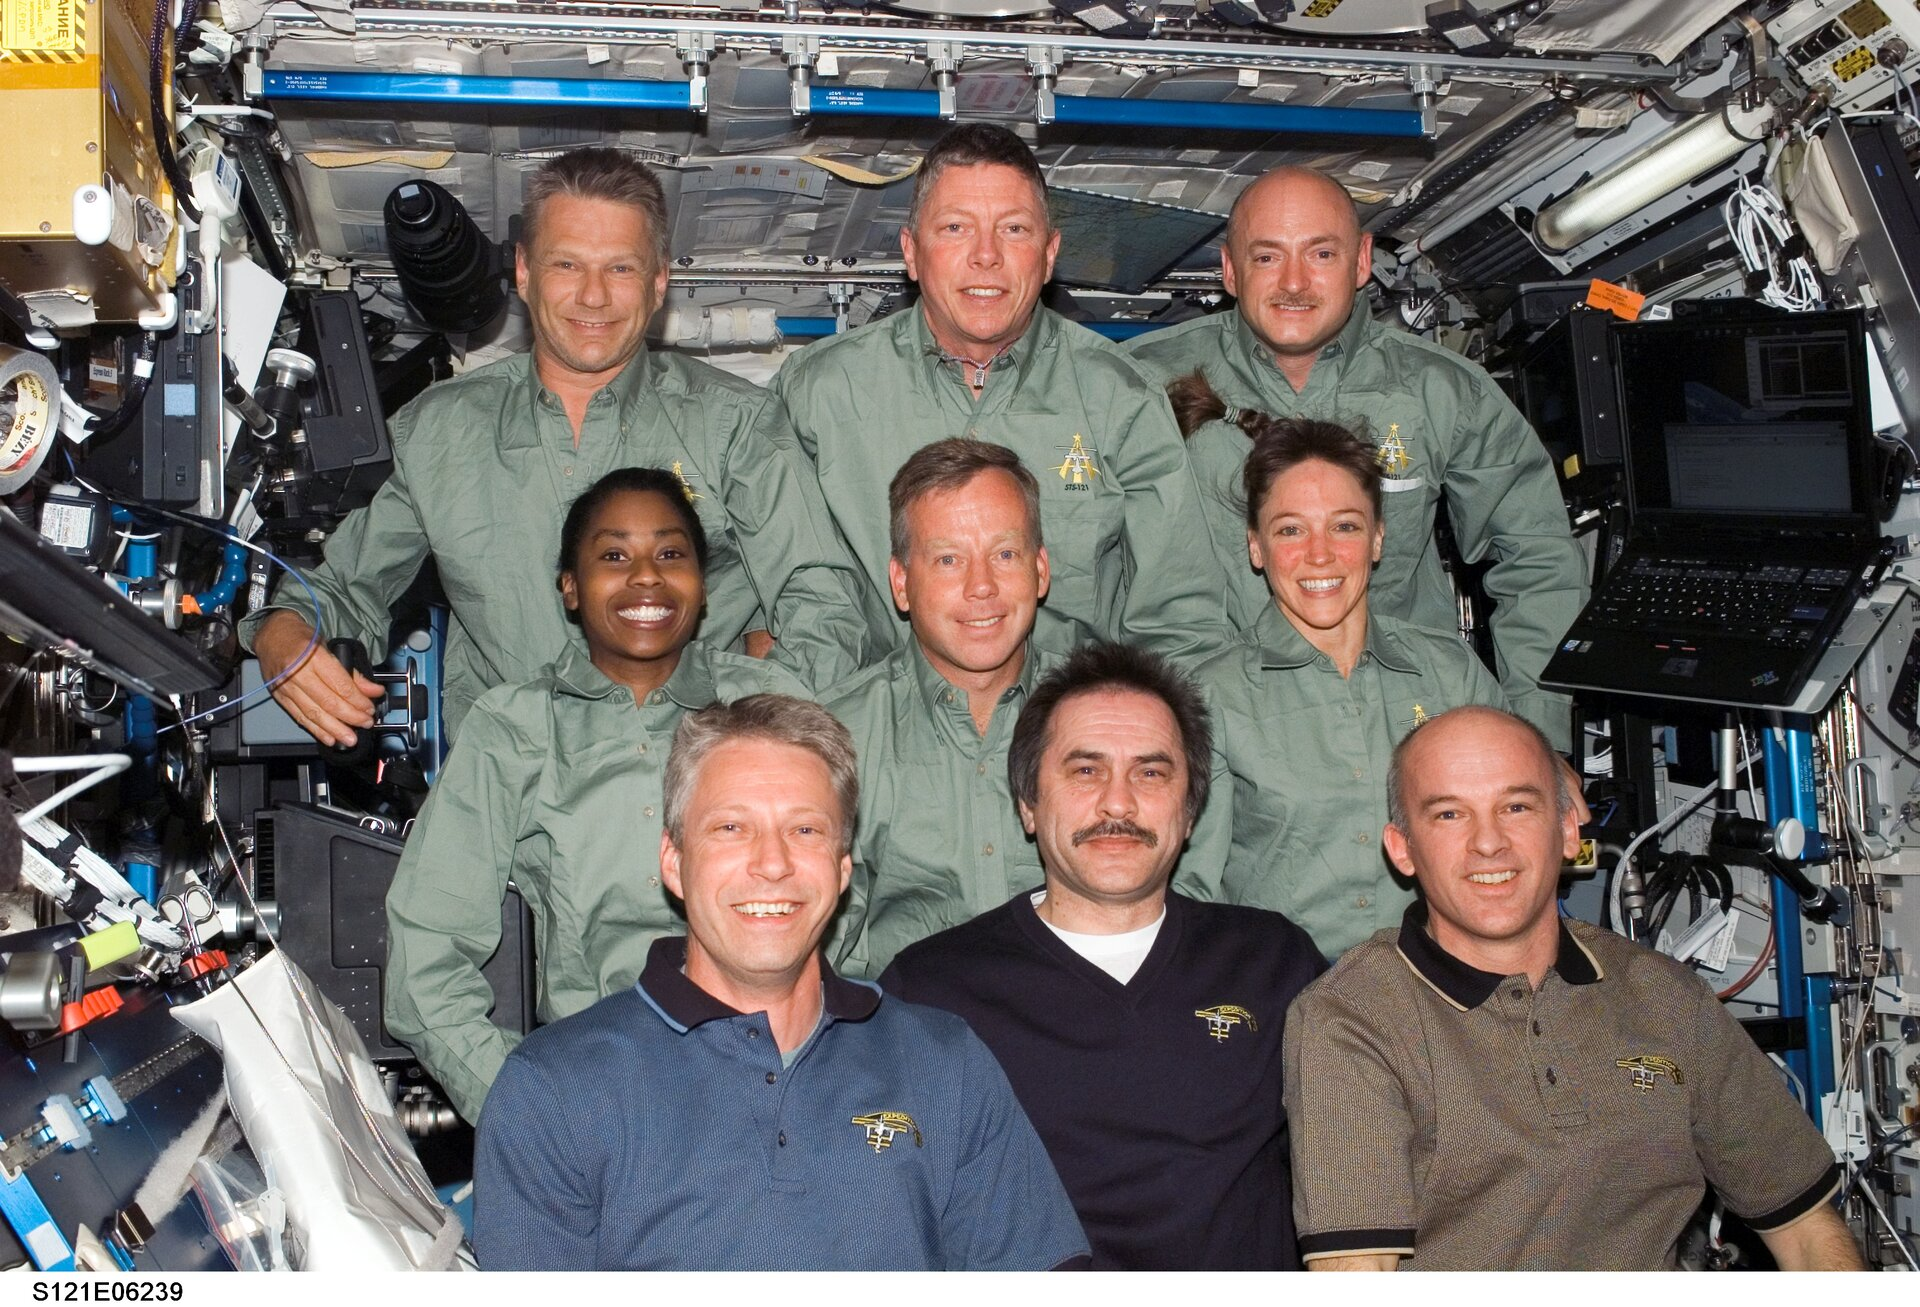 STS-121 and Expedition 13 crews spent nine days working together on board ISS